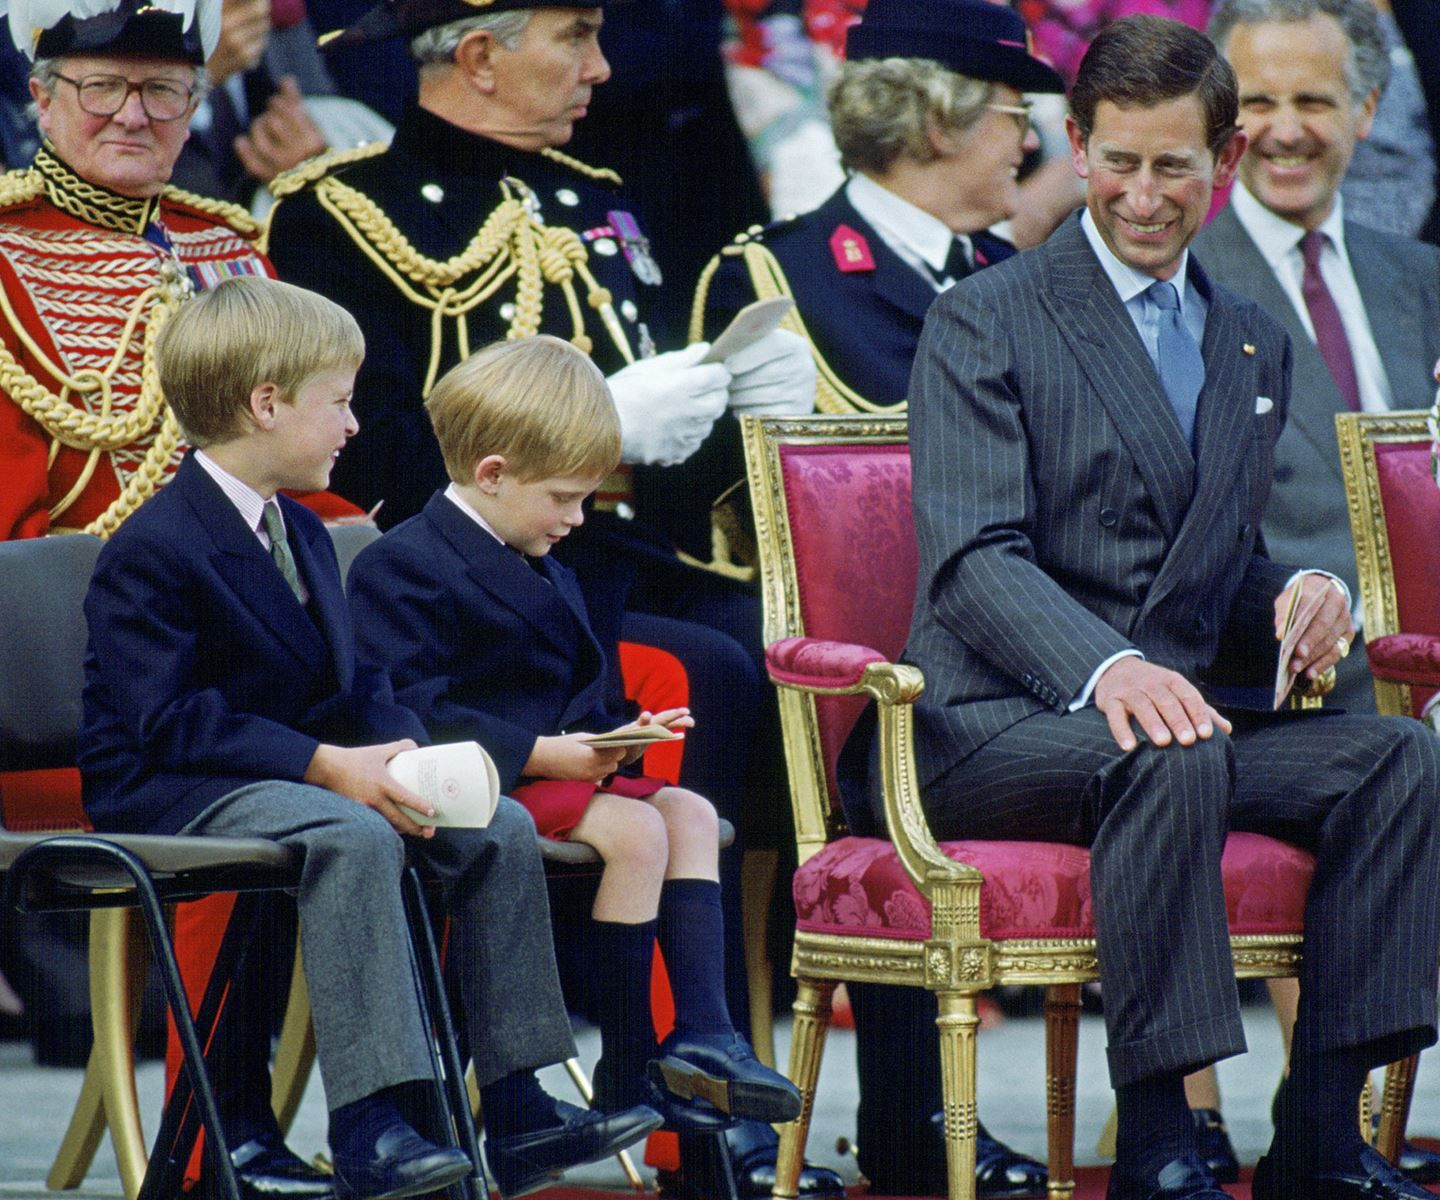 The Prince Of Wales With His Sons, Princes William And